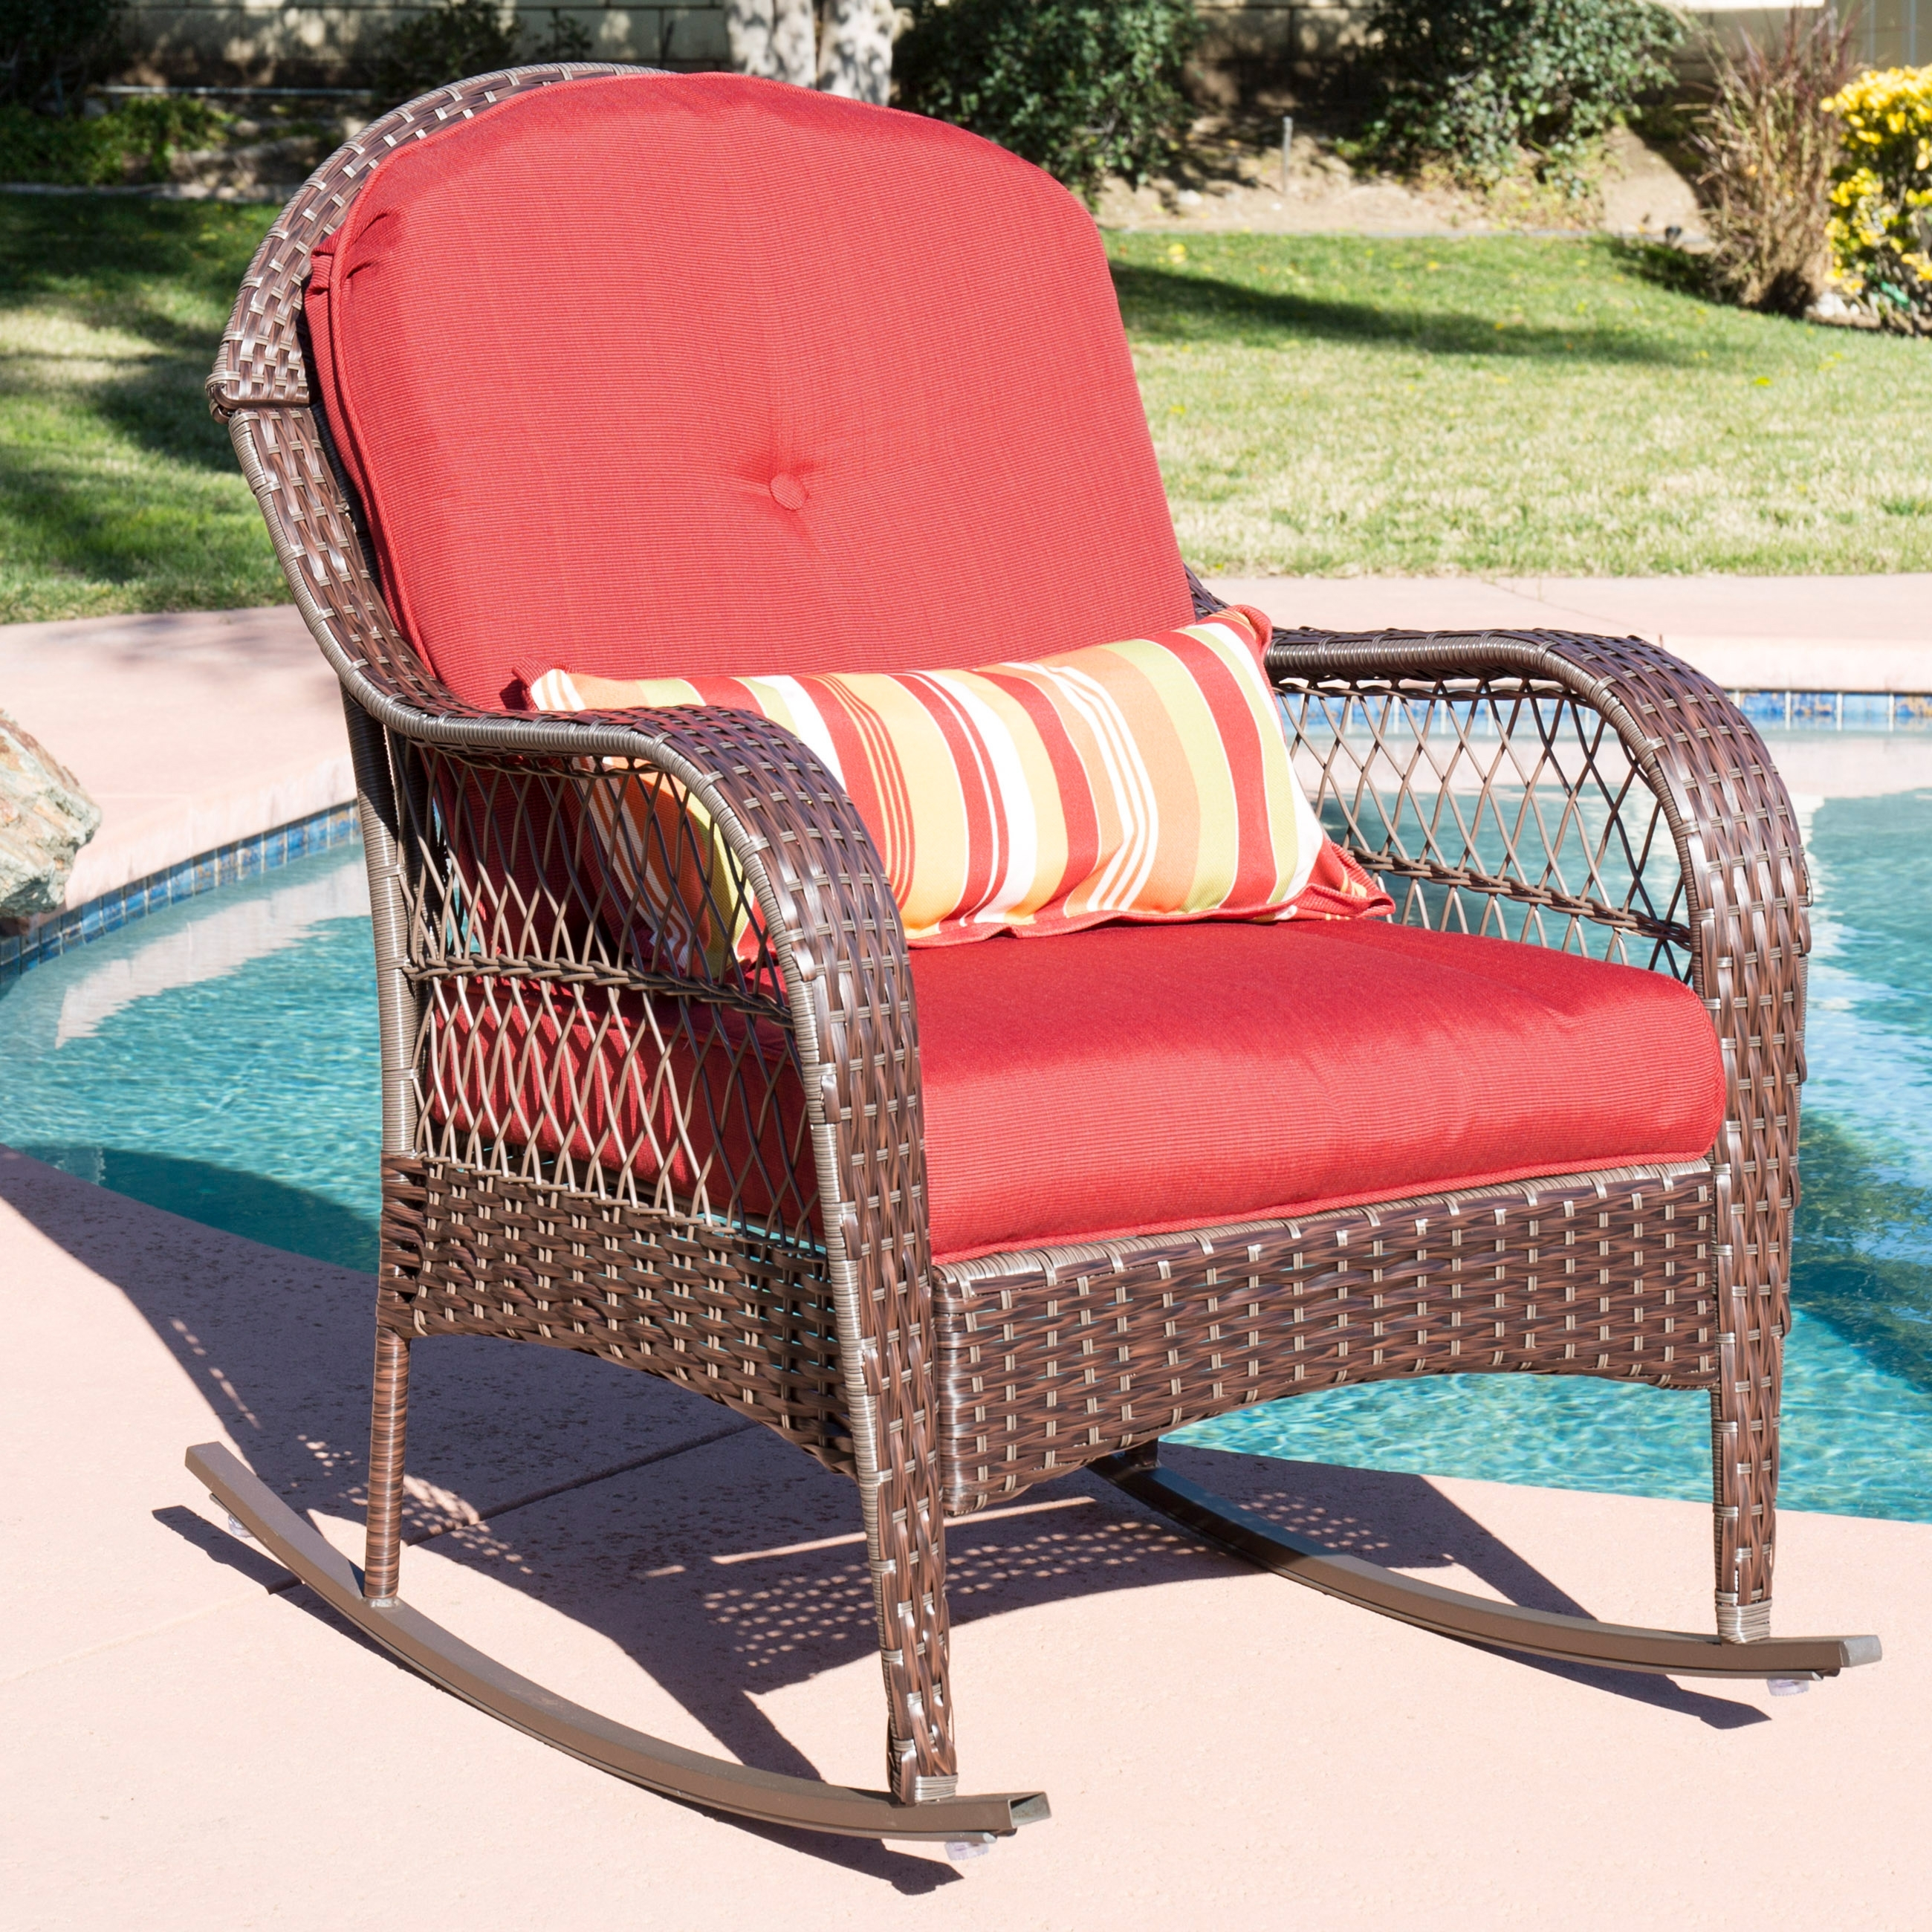 Trendy Best Choice Products Wicker Rocking Chair Patio Porch Deck Furniture Inside Wicker Rocking Chairs For Outdoors (View 8 of 15)